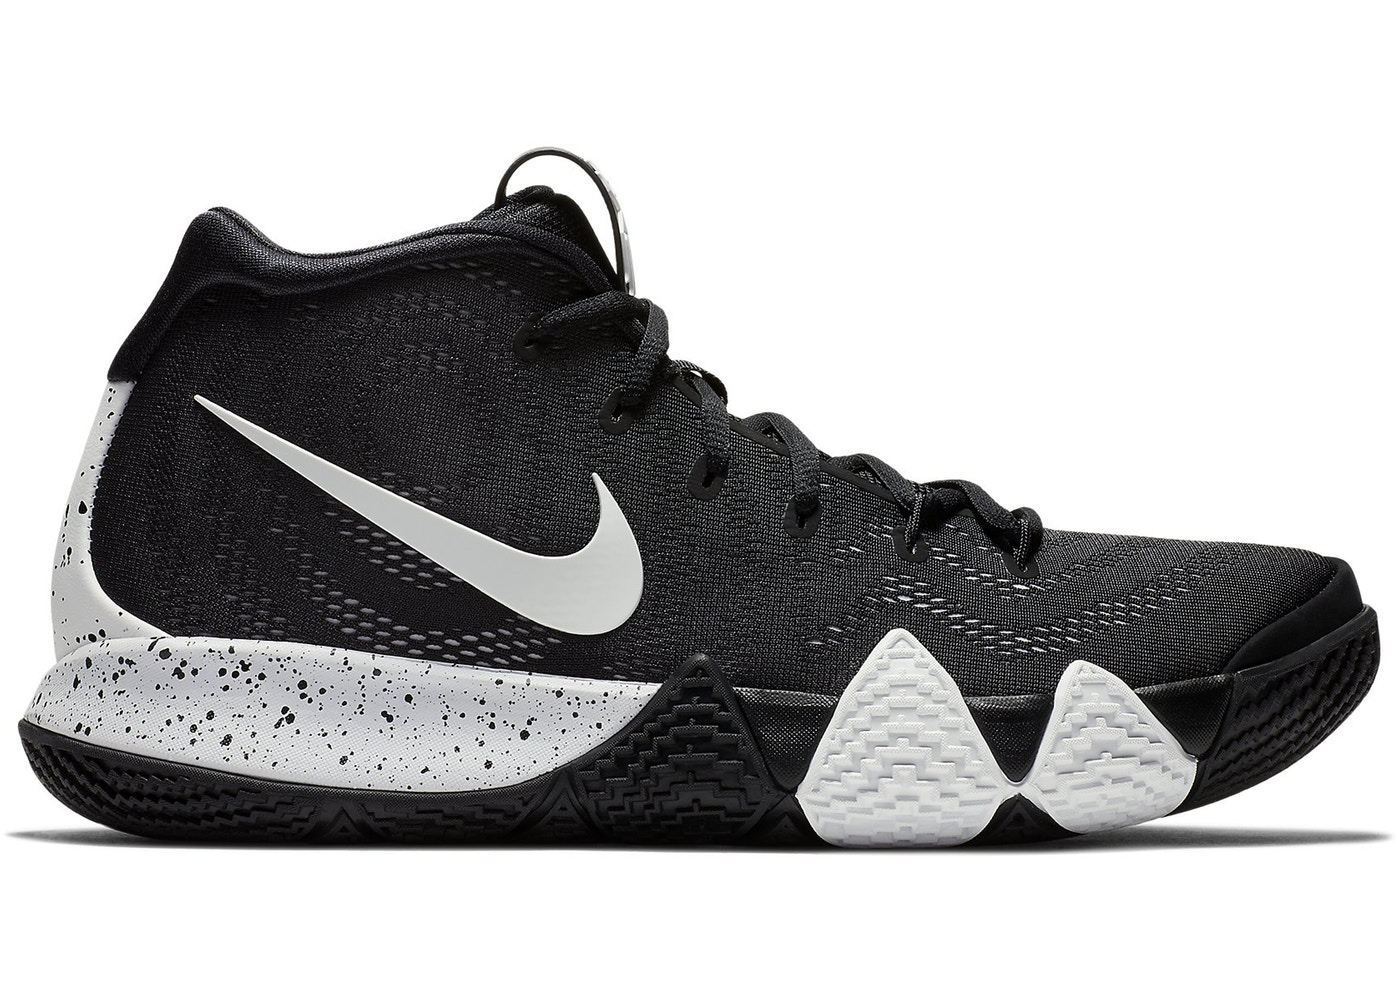 wholesale dealer 3a428 bd3bf Kyrie 4 Black White